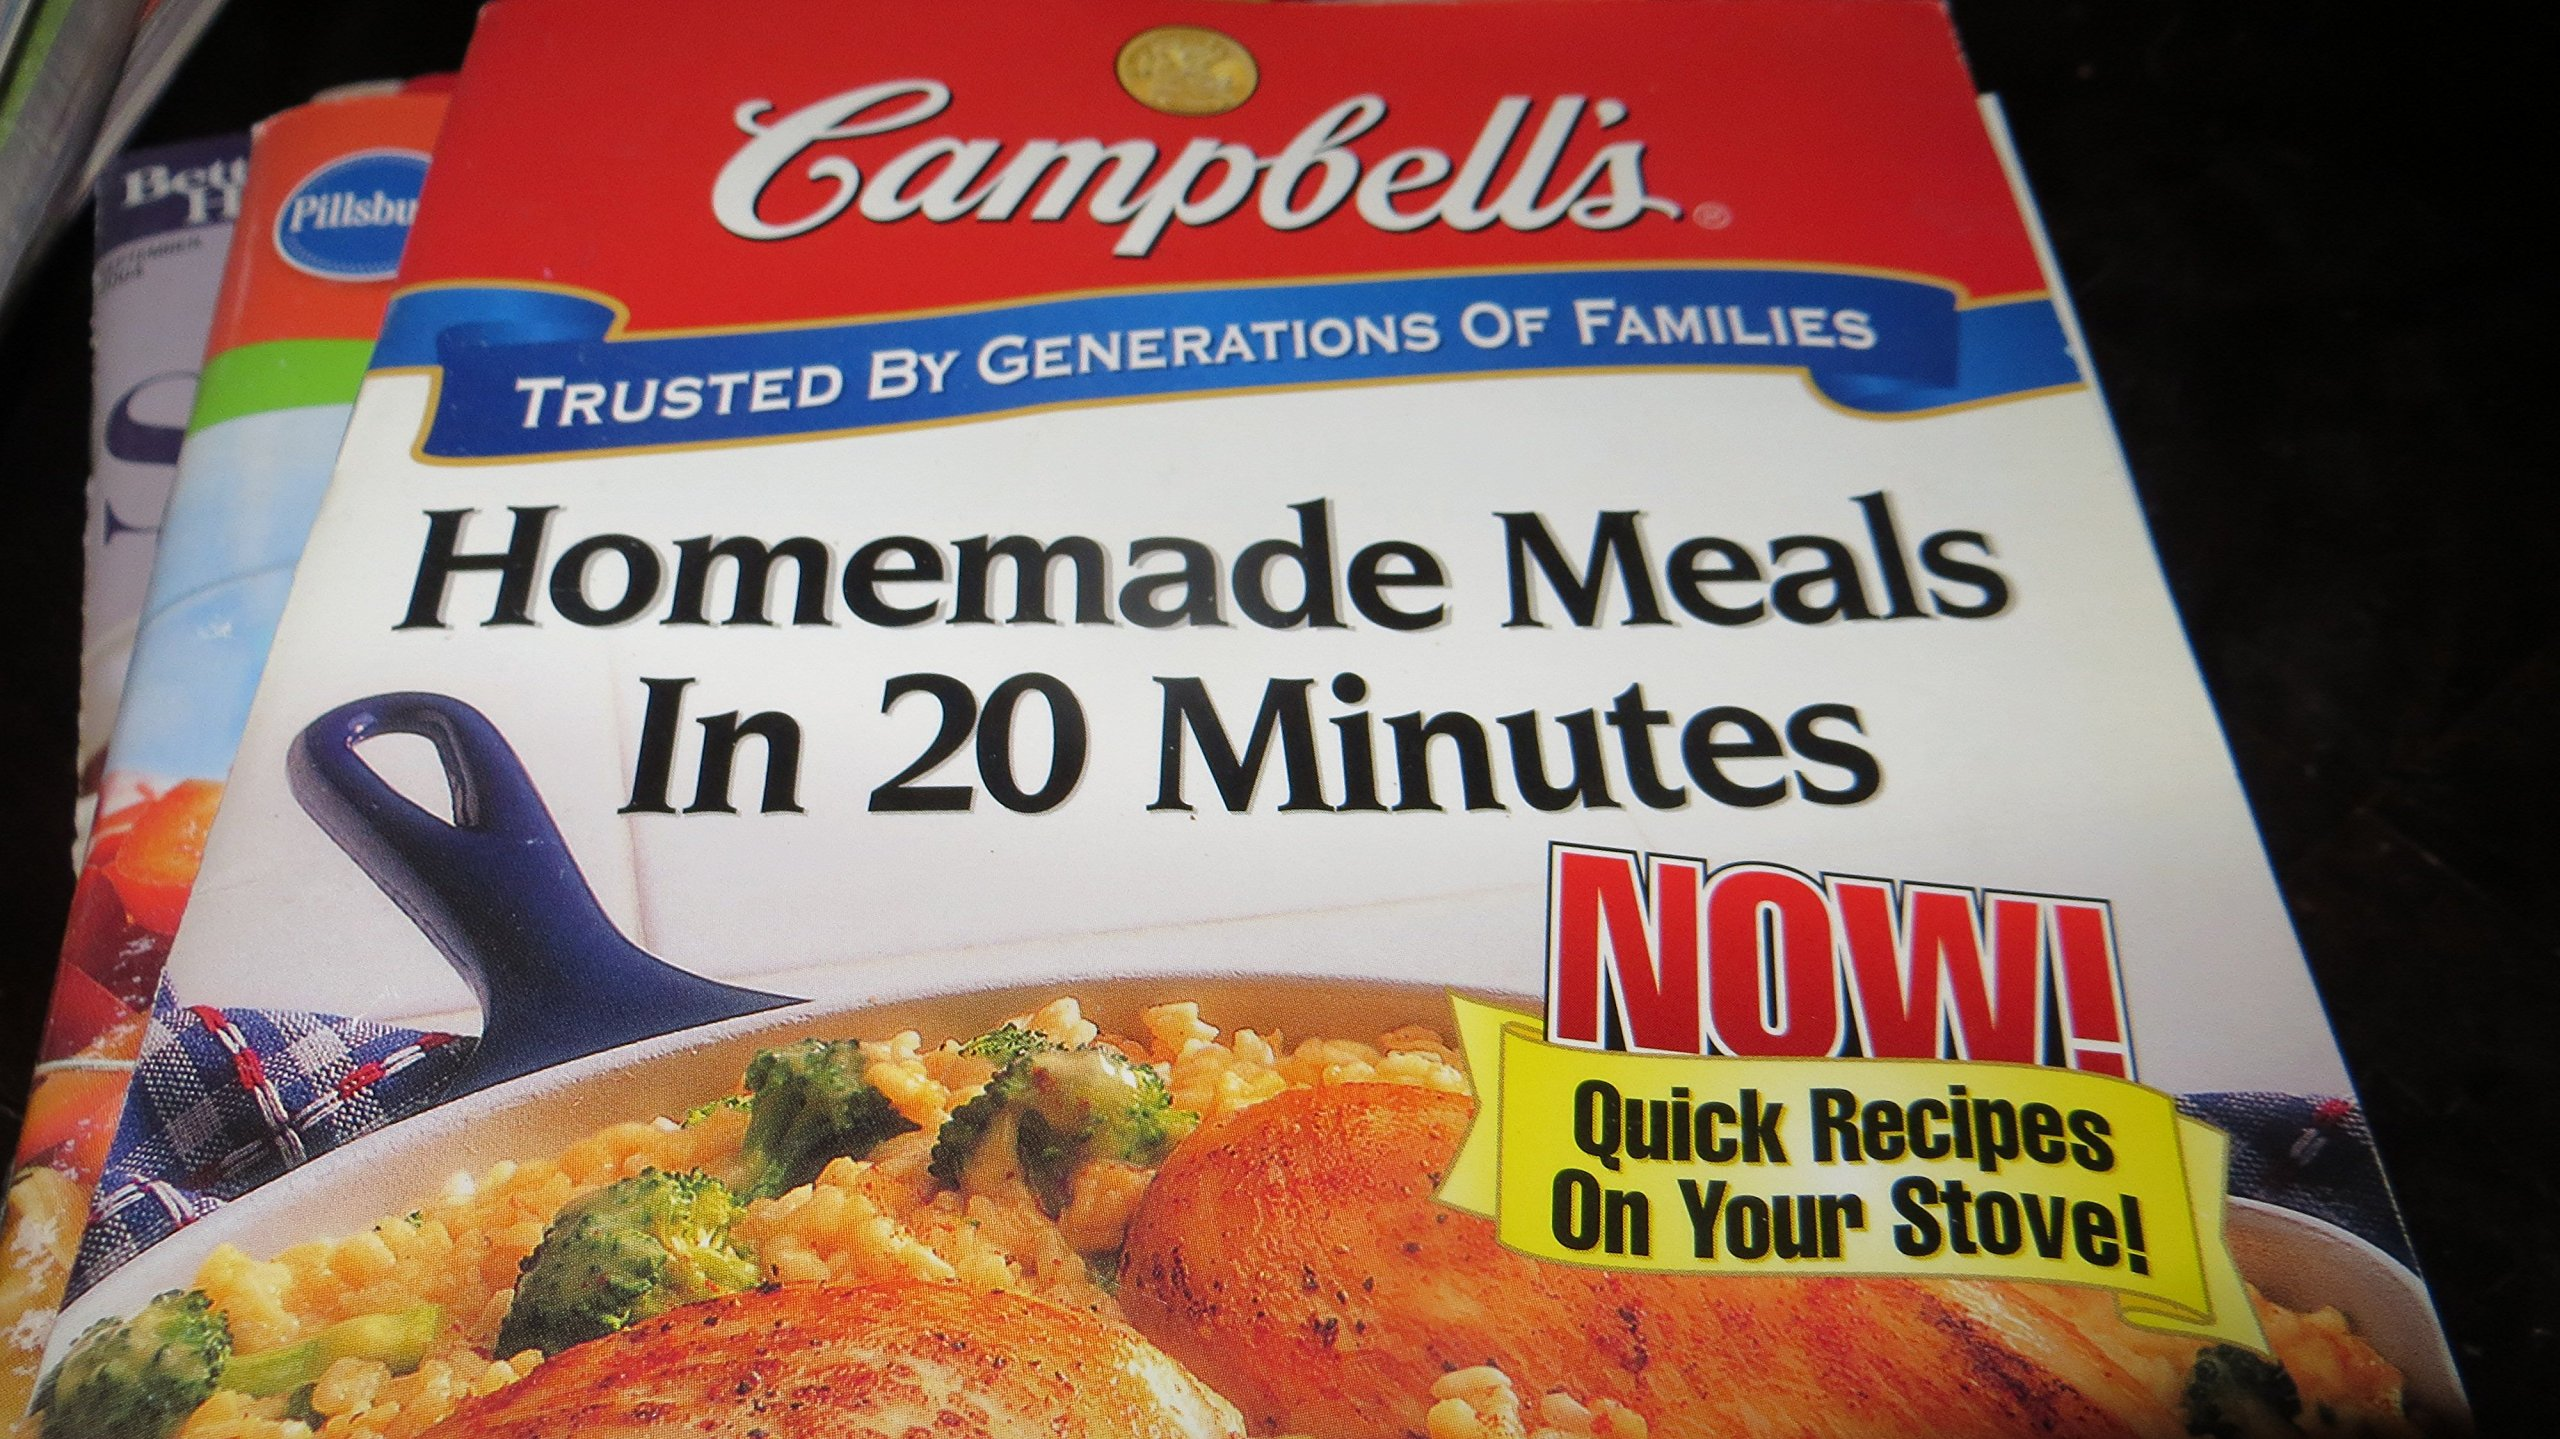 Read Online CAMPBELL'S HOMEMADE MEALS IN 20 MINUTES Now! Quick Recipes on Your Stove ebook